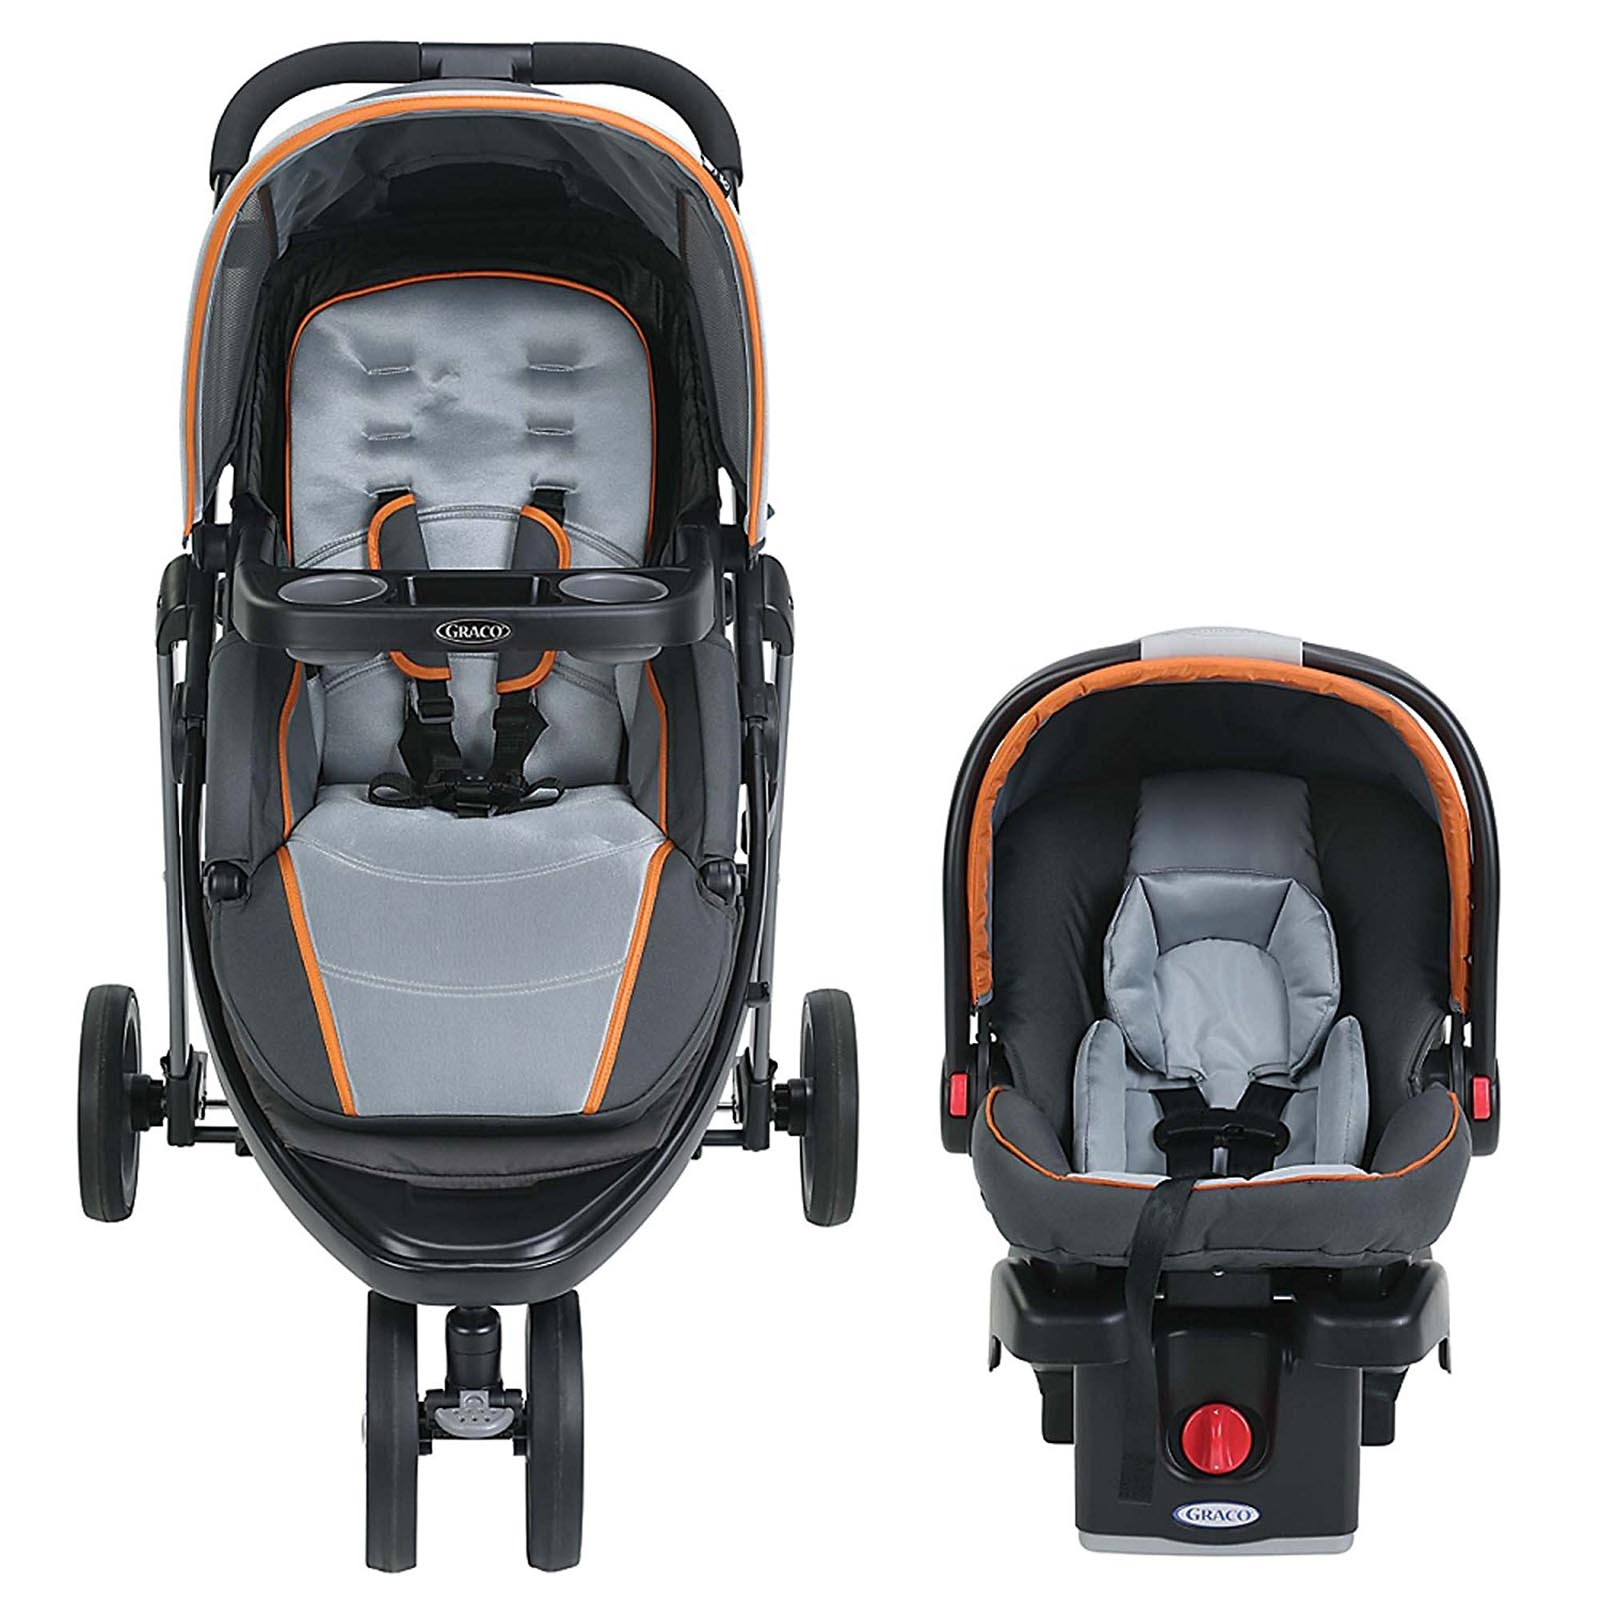 Travel Car Seat: Graco Modes Sport Click Connect Stroller And Car Seat